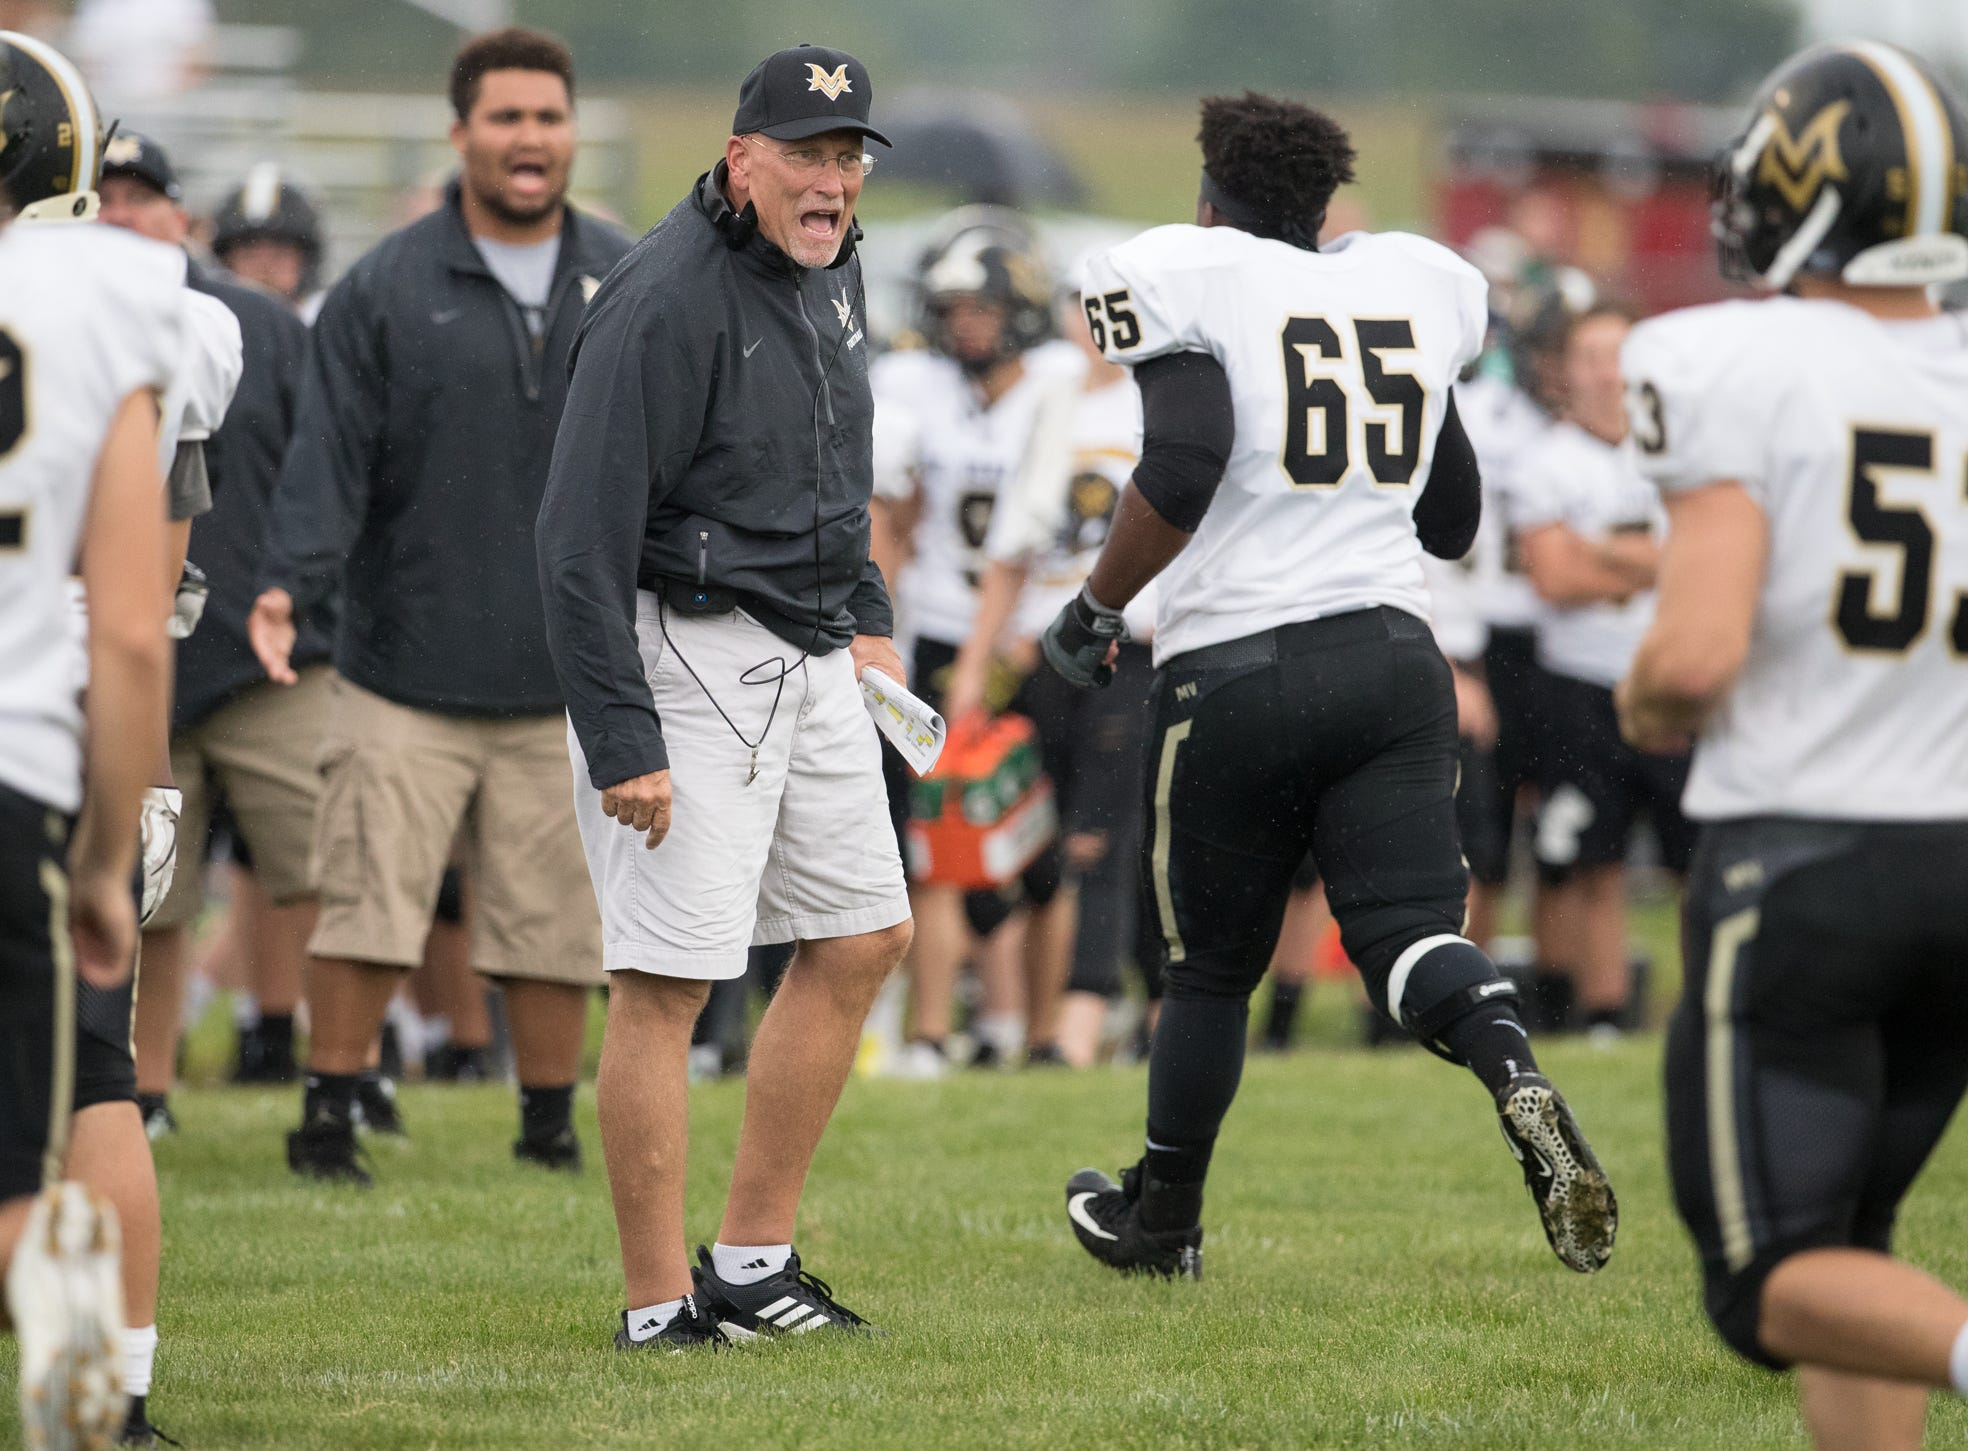 Mike Kirschner, head coach for Mount Vernon High School, congratulates his team on a touchdown at Hamilton Heights High School football, won by MVHS, 43-14, Arcadia, Friday, Aug. 17, 2018. This game is the first for HHHS head coach Jon Kirschner, who faced his father Mike Kirschner, a veteran and champion coach in his first season at MVHS.